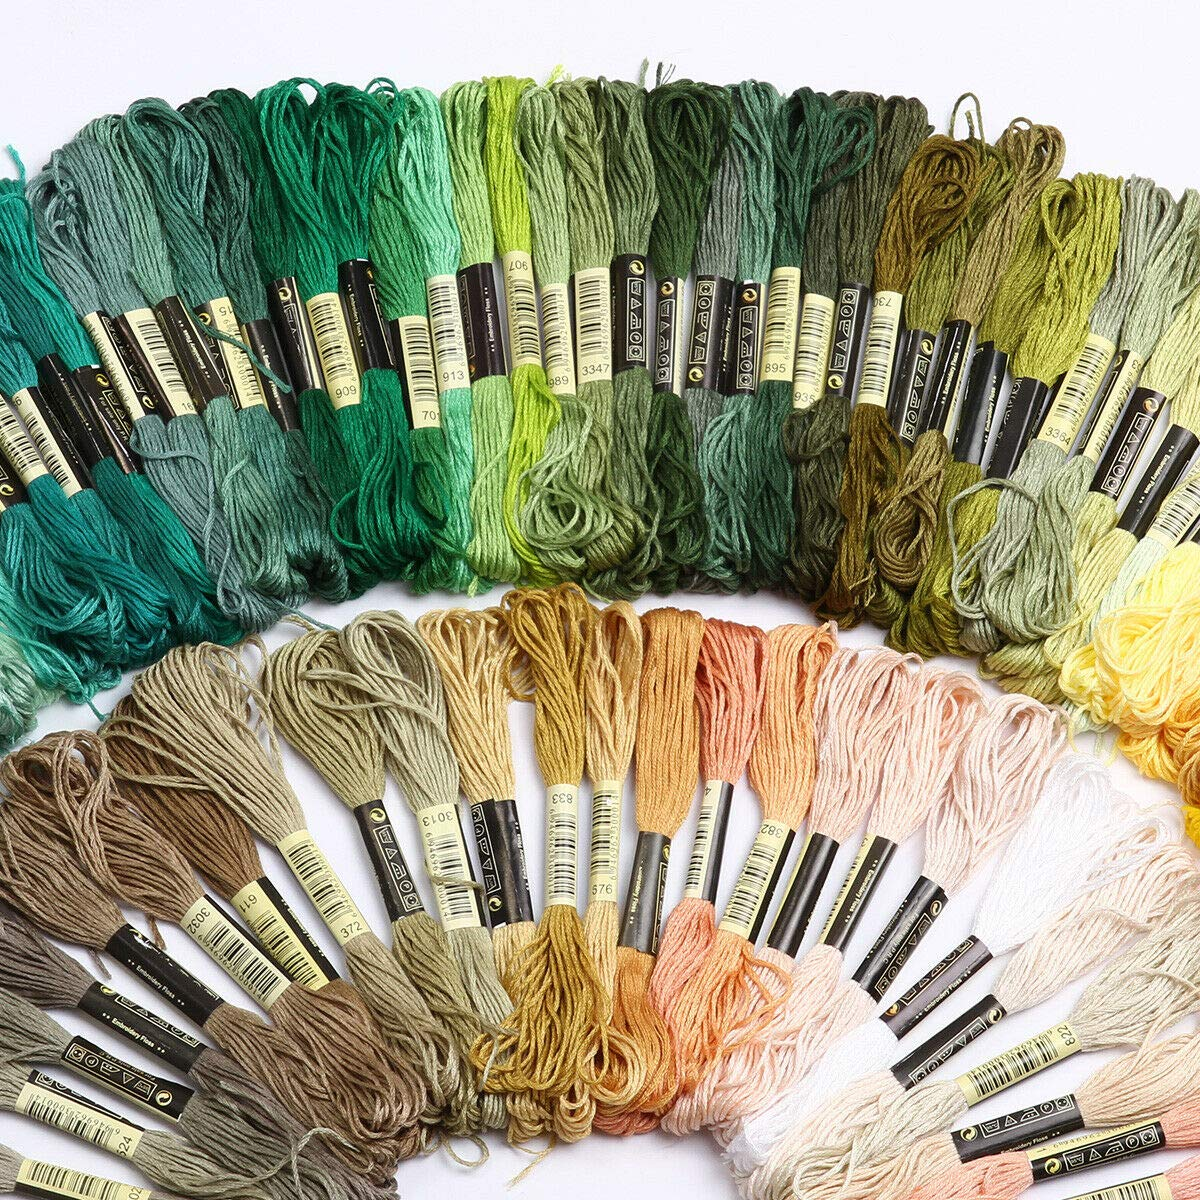 Embroidery Floss Set Embroidery Floss 100 Skeins Colored String Embroidery Floss Friendship Bracelet String Bracelets Thread for Cross Stitch Threads Bracelet Yarn Craft Floss